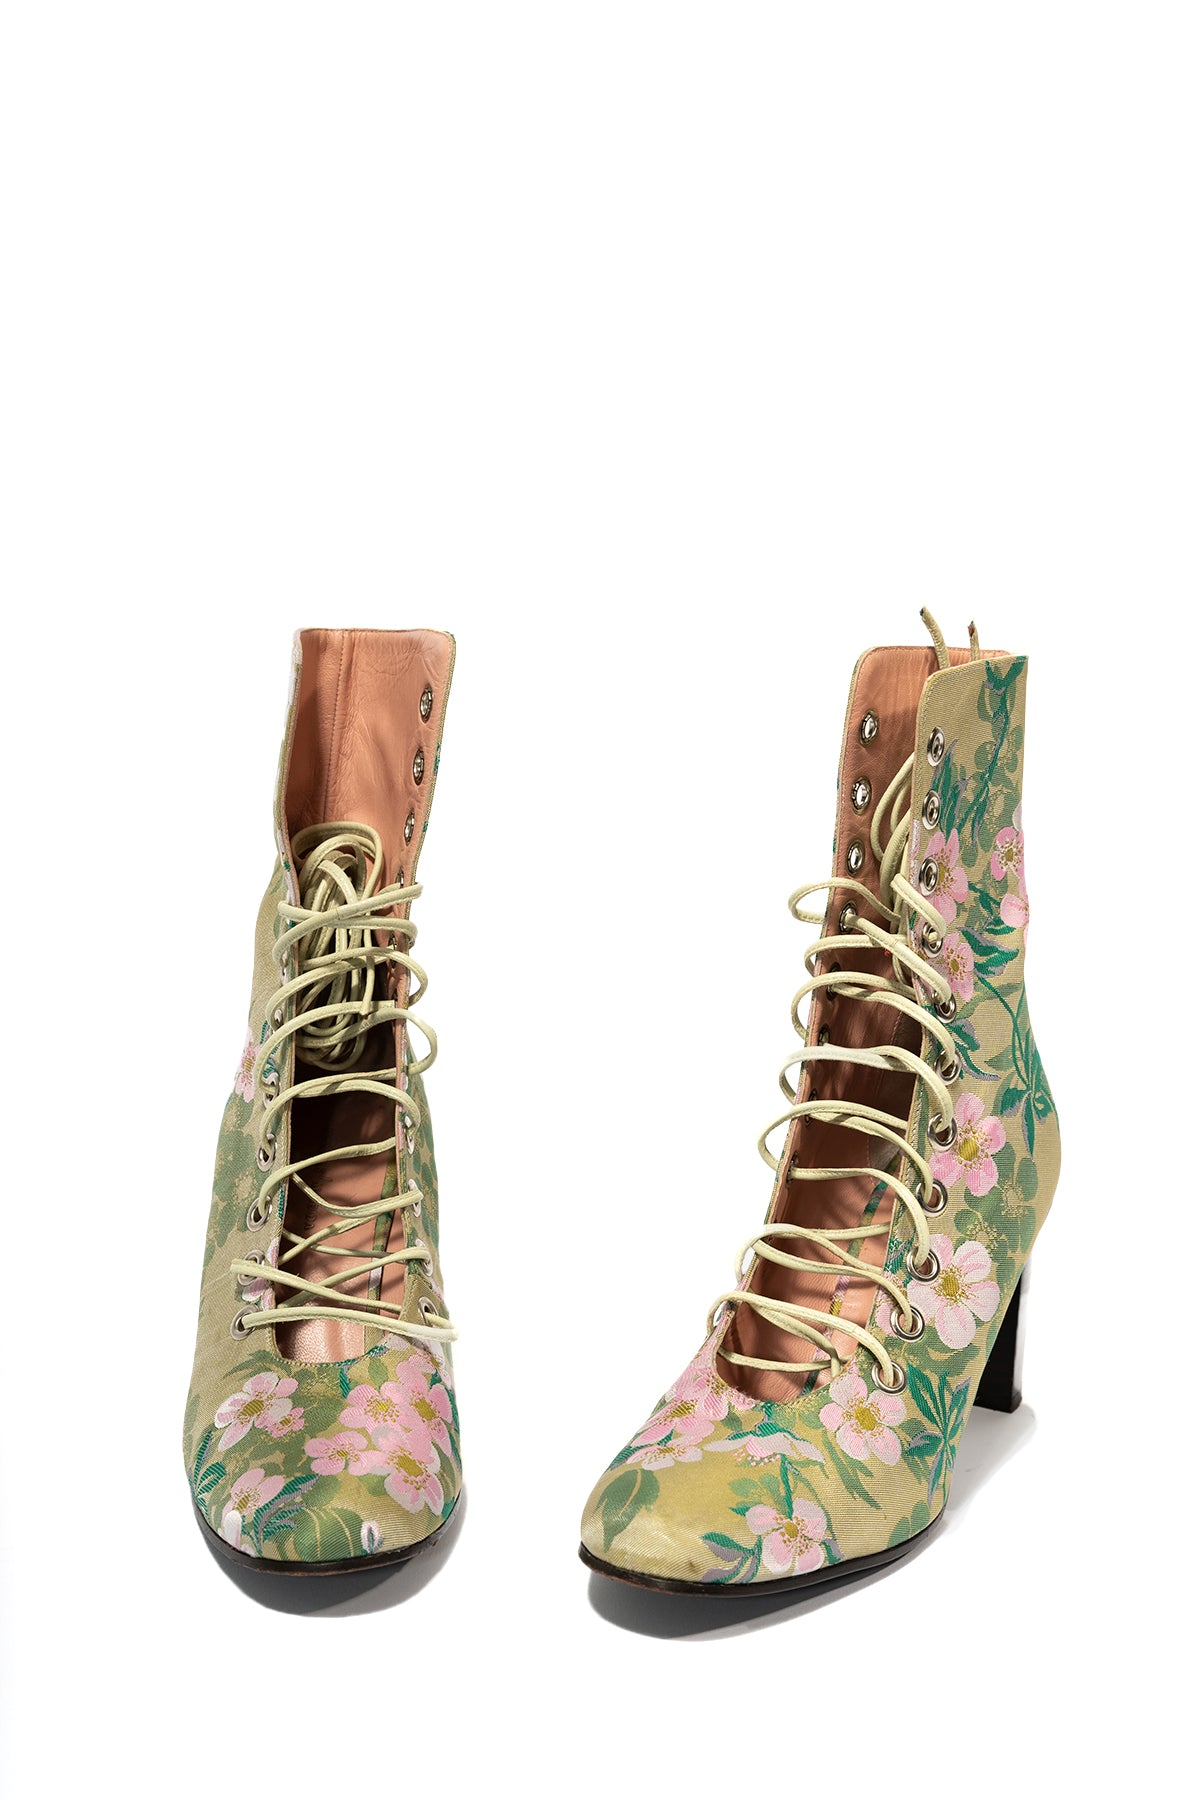 BROCADE LACE UP ANKLE BOOTS  marques almeida